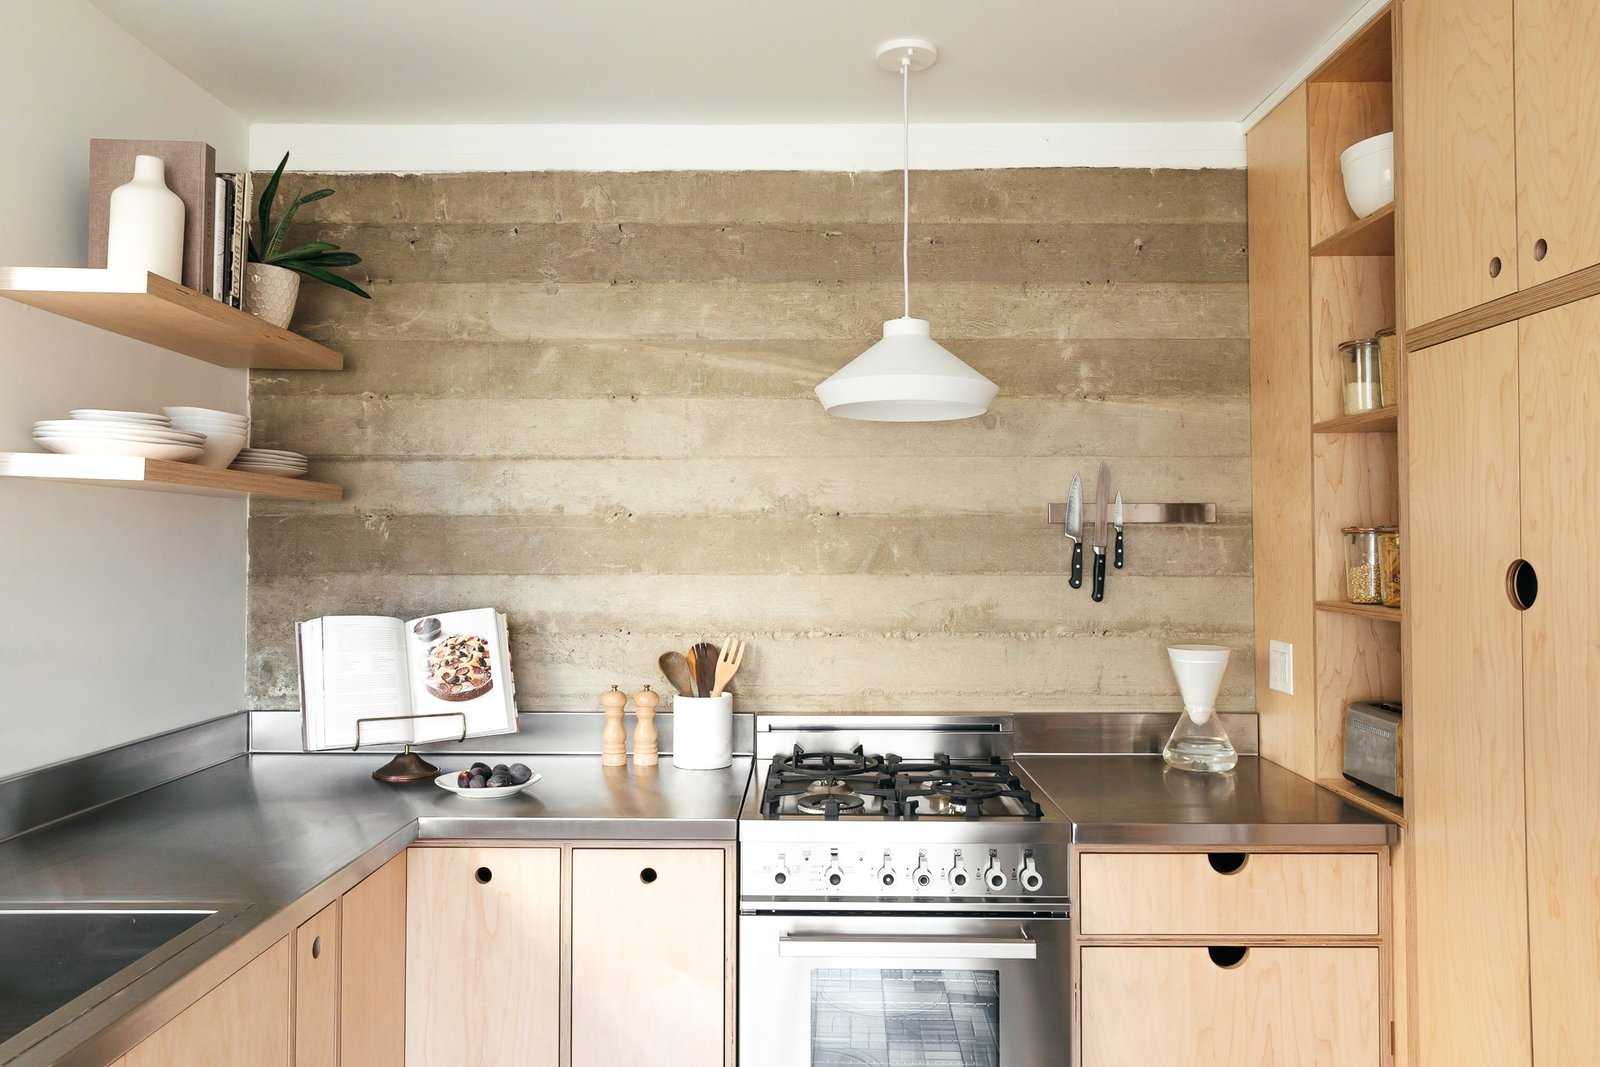 The couple opted for light-hued cabinetry with exposed edges and no hardware, custom-built from marine-grade ApplePly. Having the cabinets custom-made ensured that they could take advantage of every square inch in the small space.